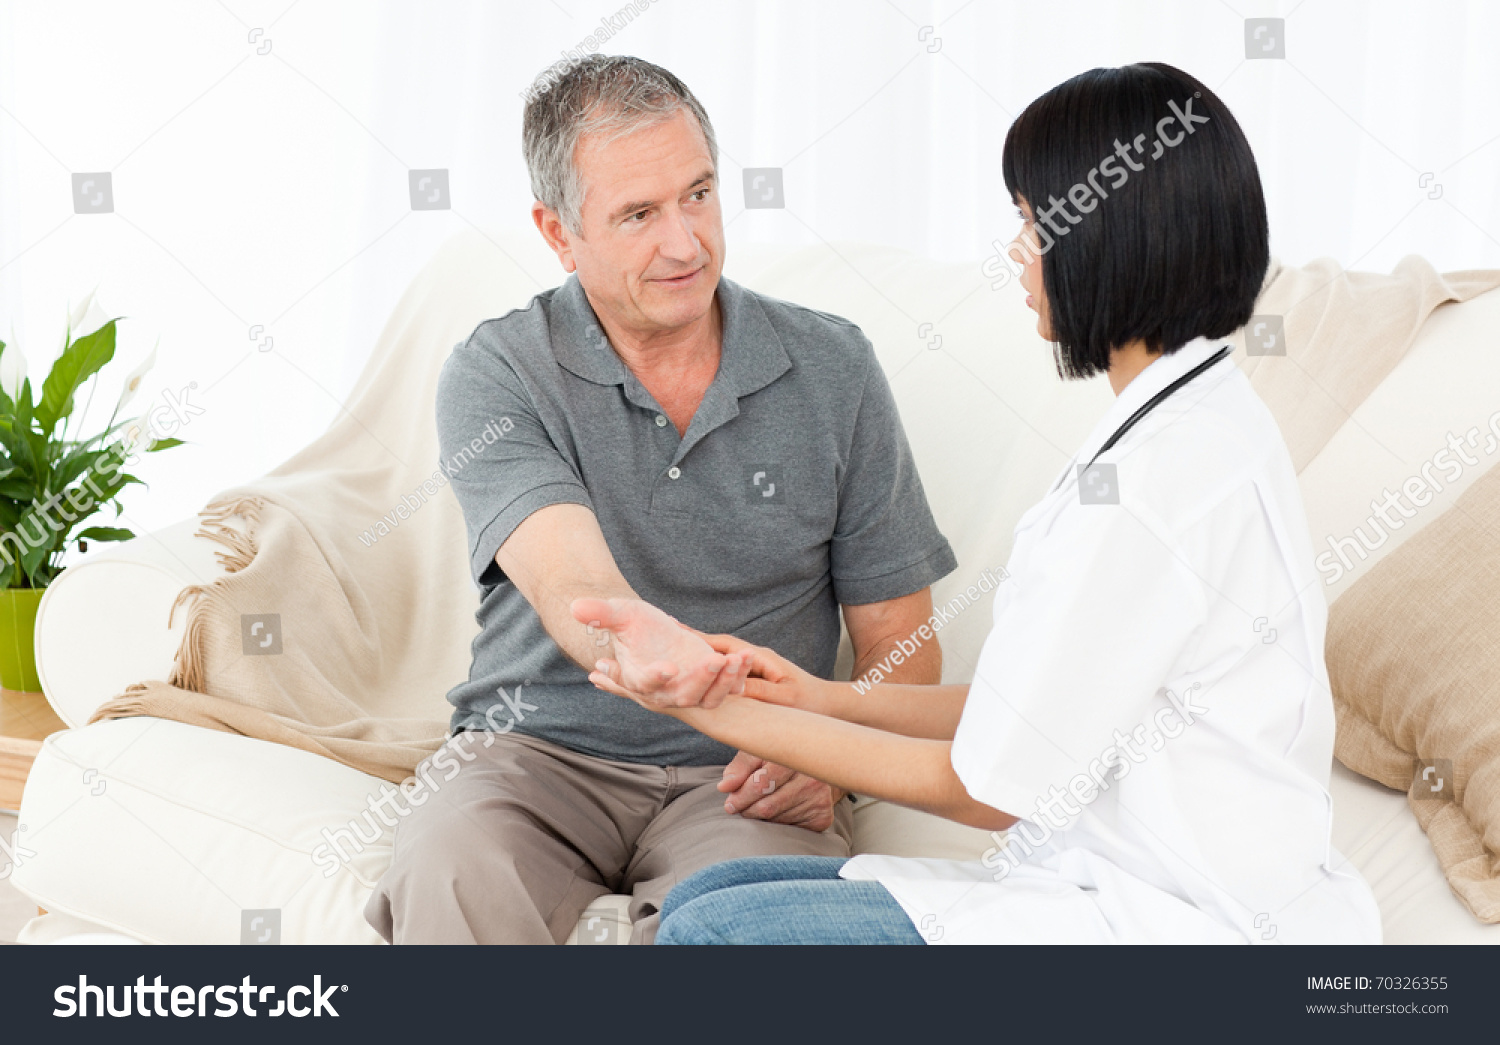 Nurse Taking Pulse Her Patient Stock Photo 70326355 ...